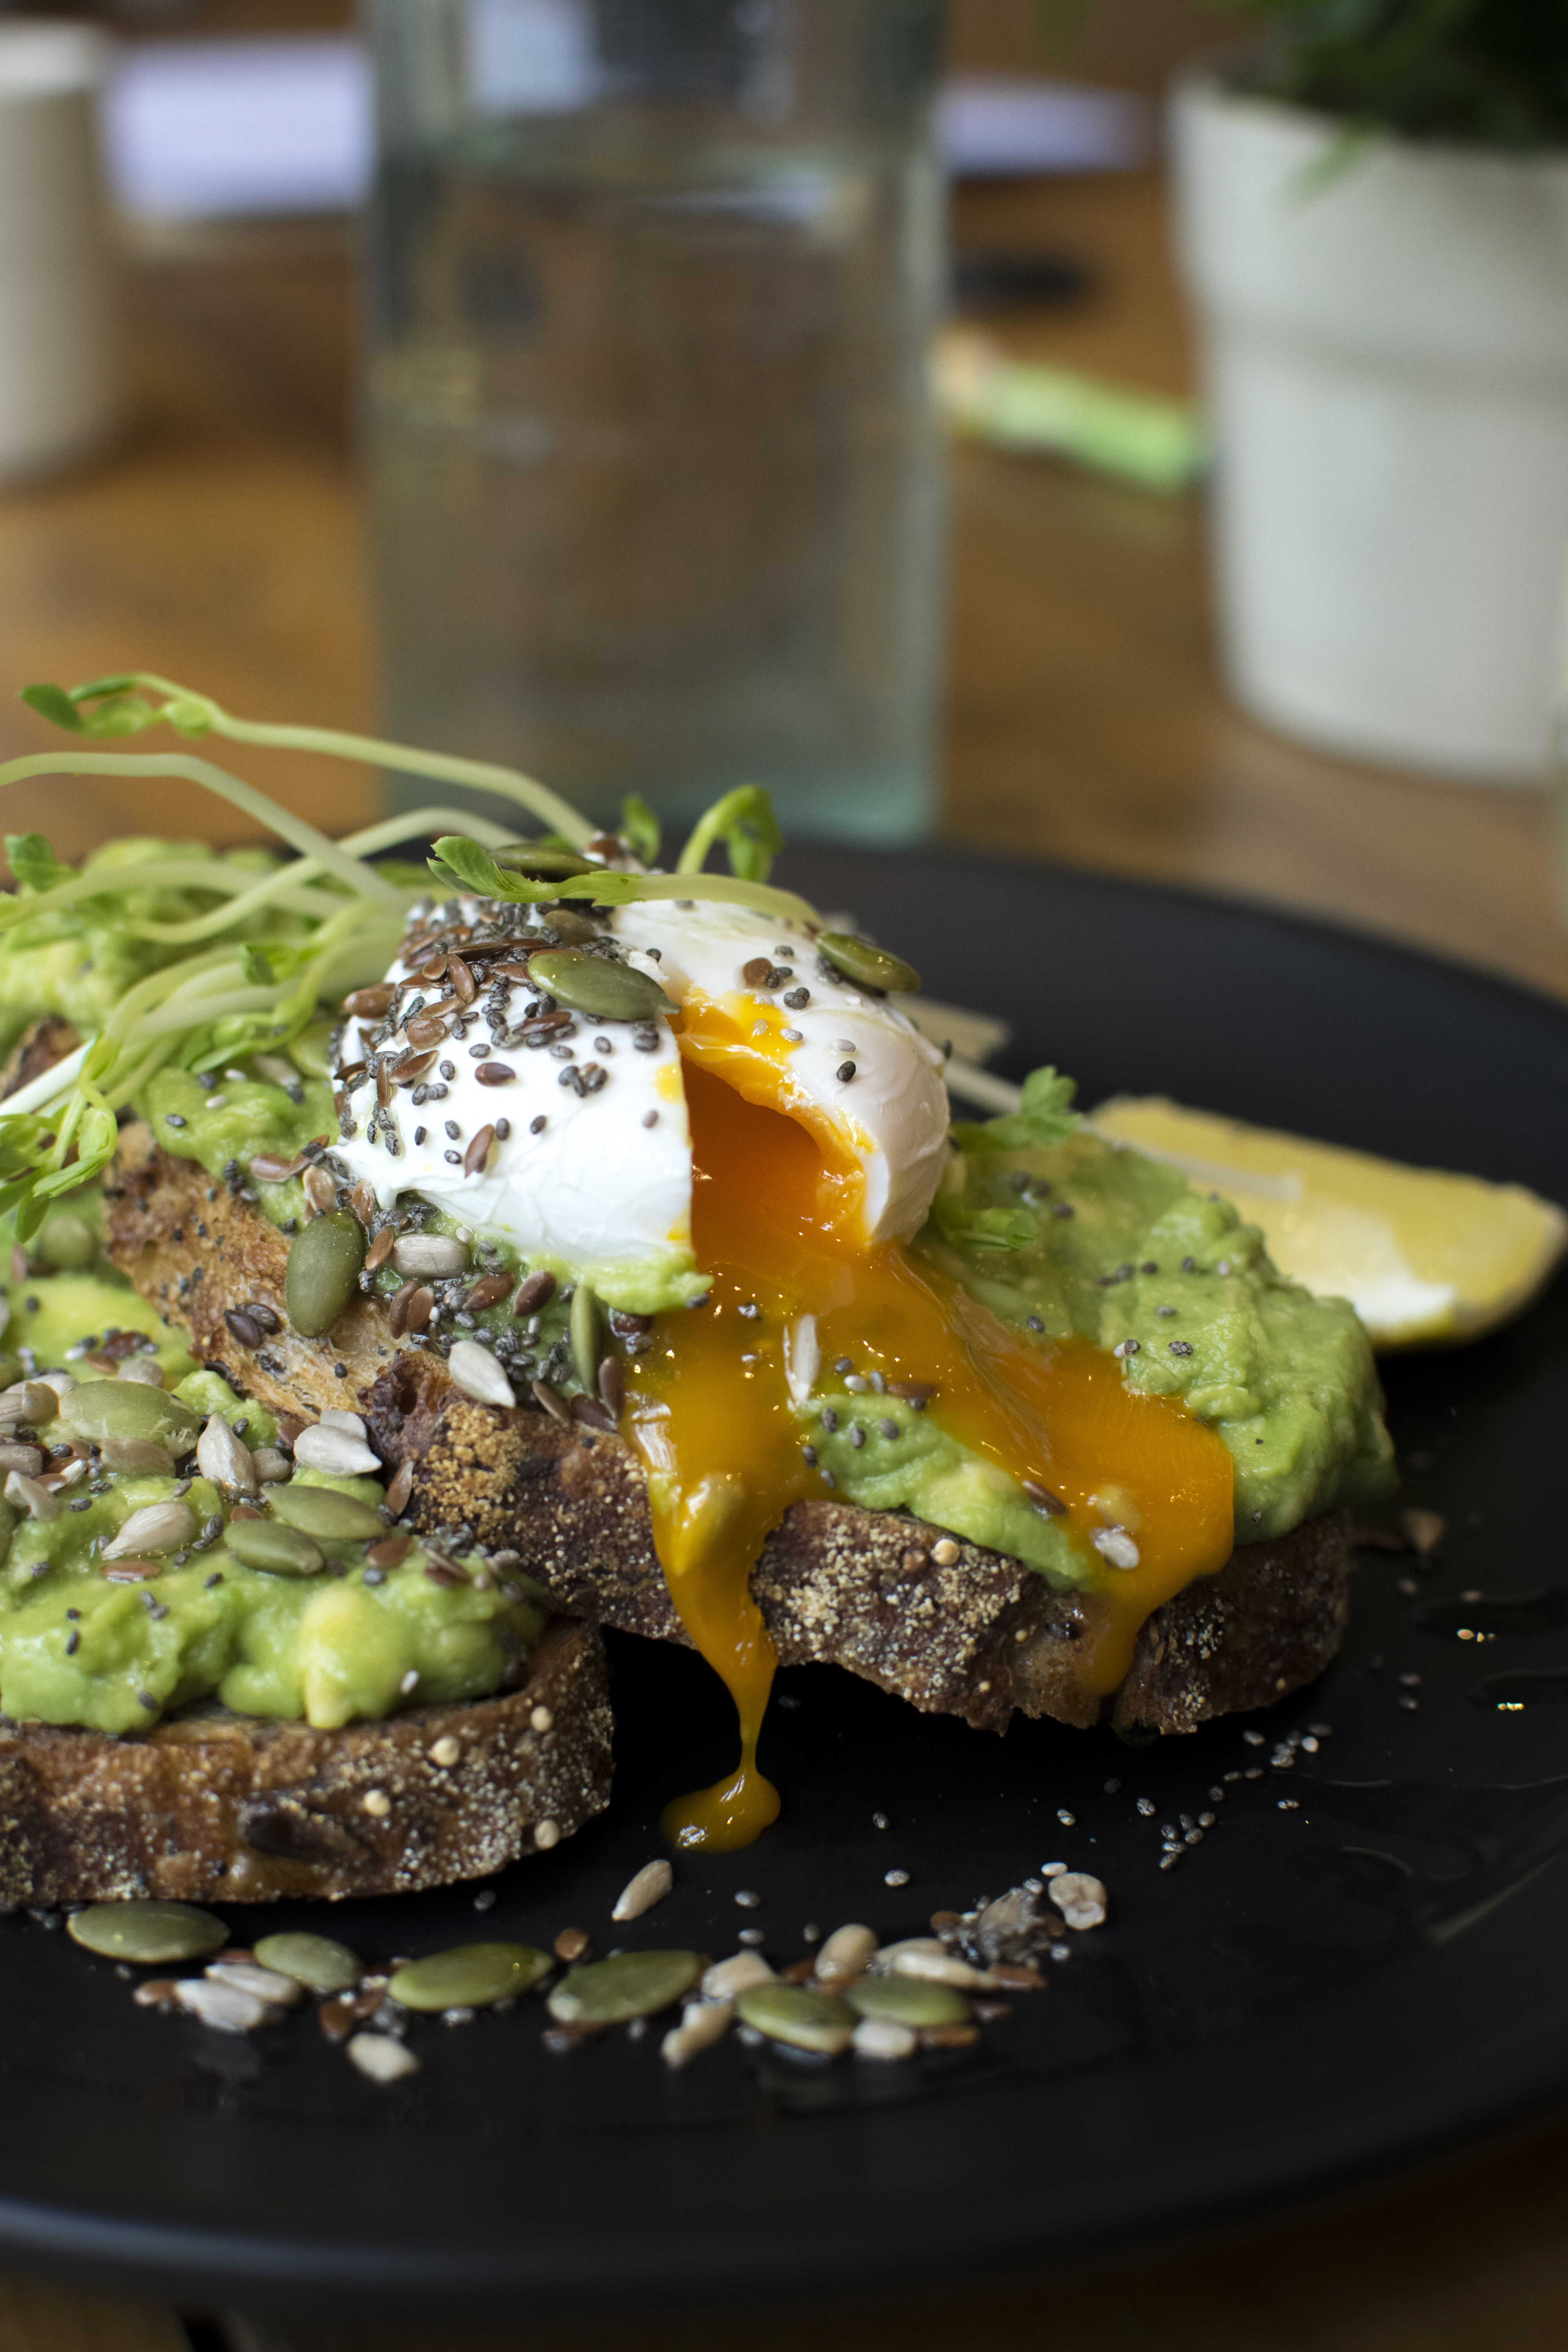 SMASHED AVOCADO with poached eggs, snow pea sprouts, mixed